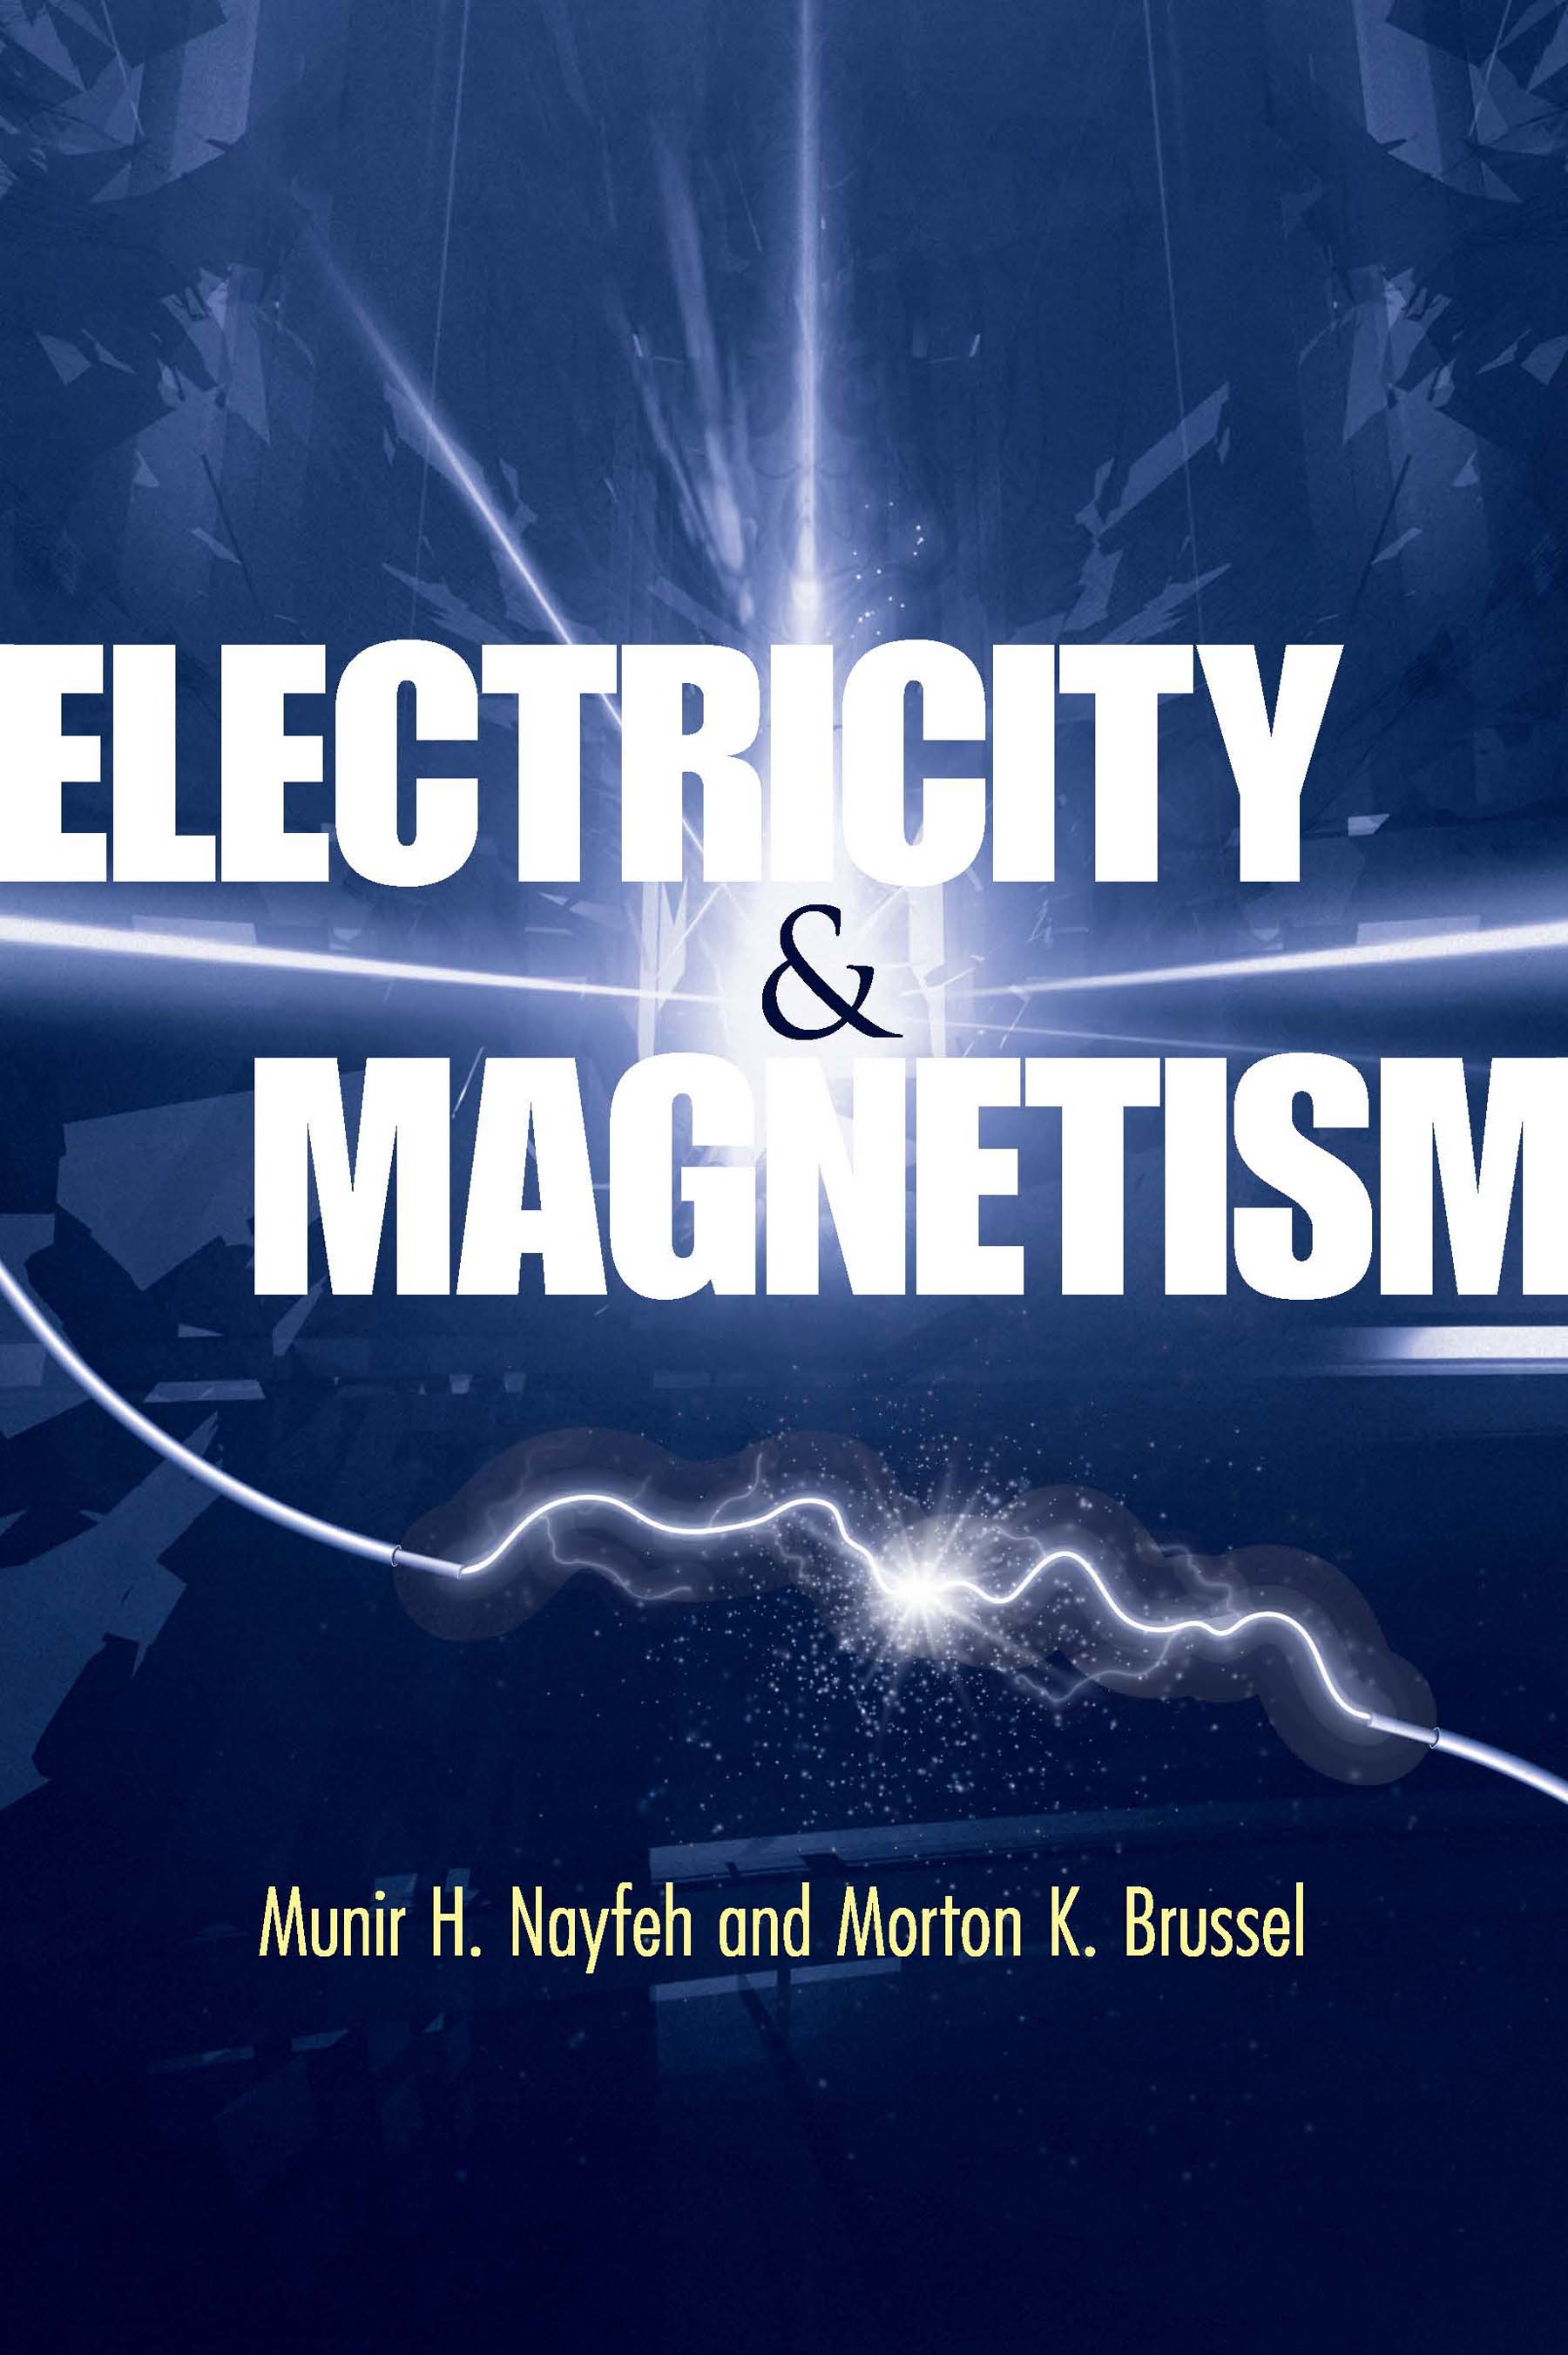 Electricity and Magnetism by Munir H  Nayfeh, Morton K  Brussel